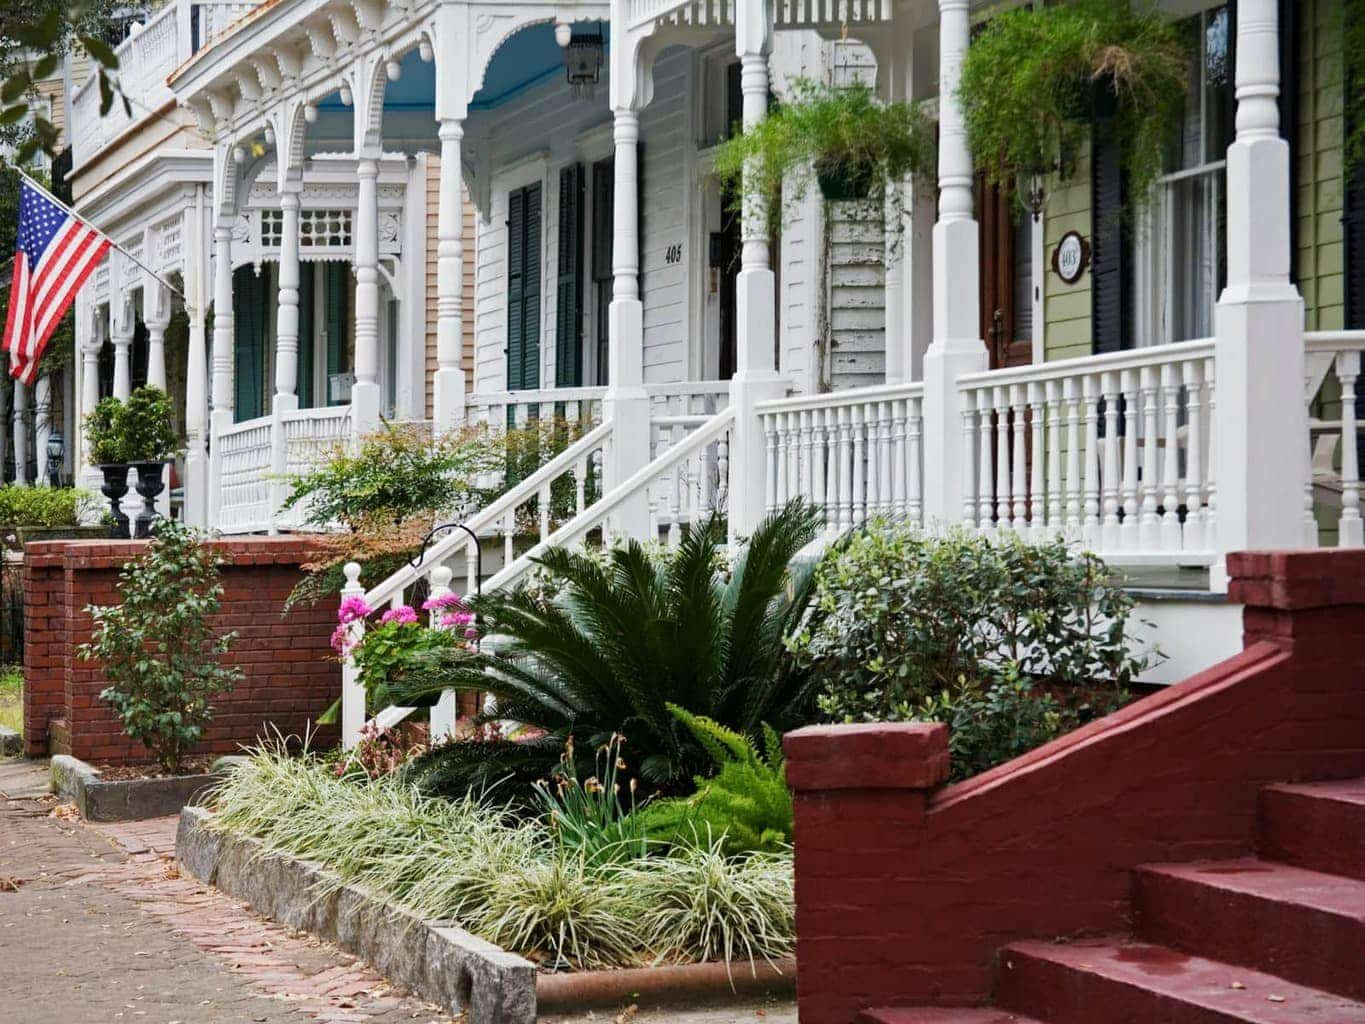 The Ultimate Romantic and Adventurous Getaway in Historic Savannah